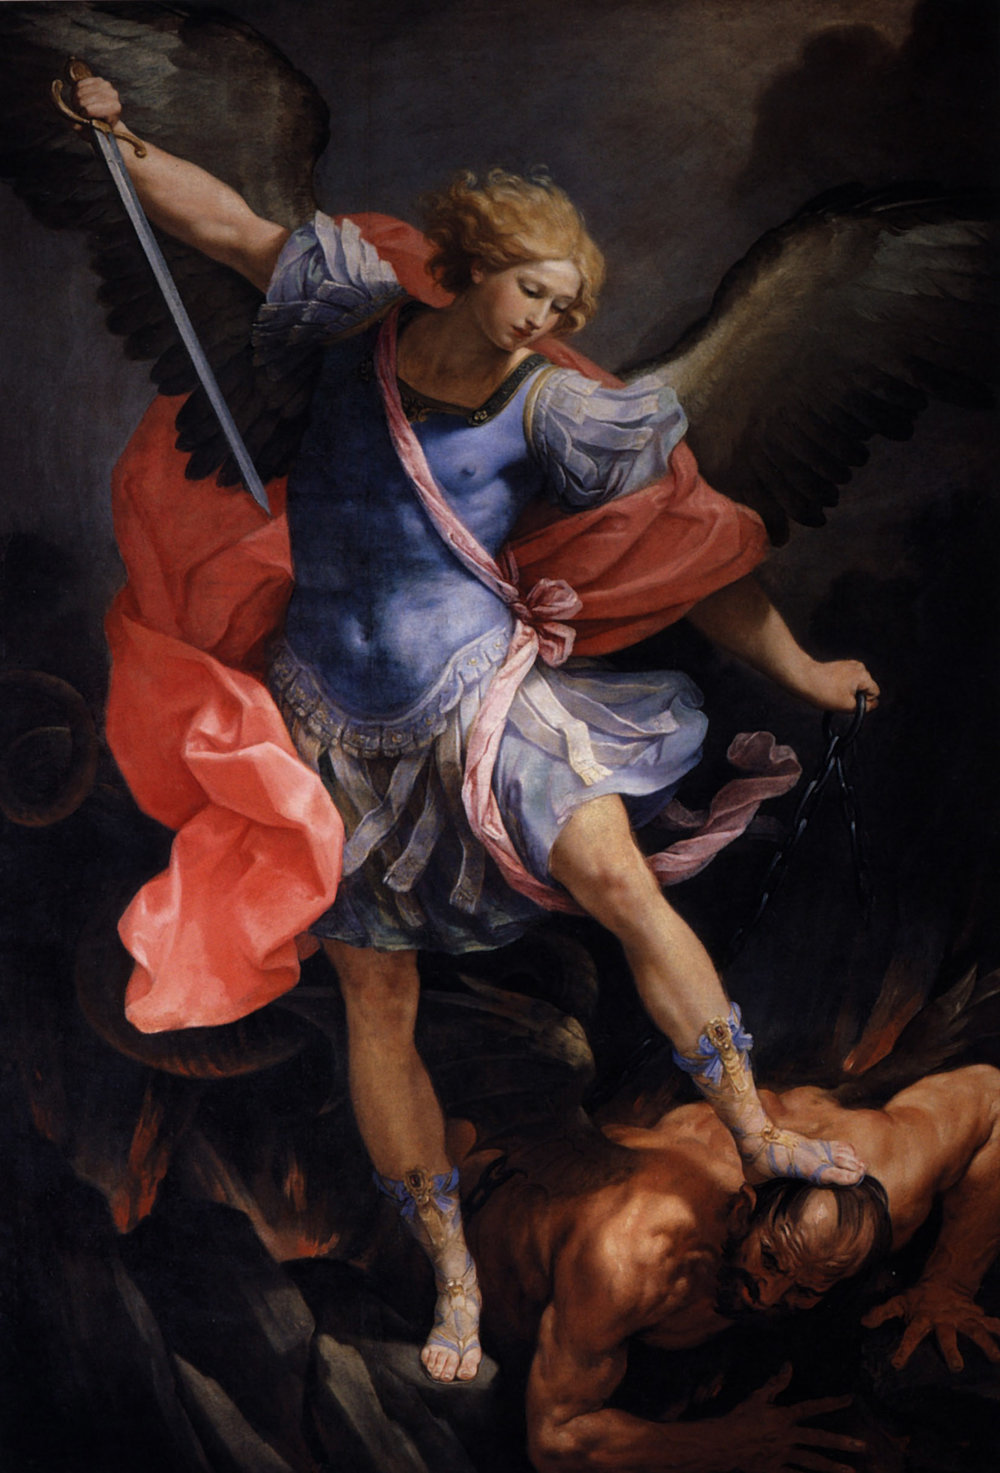 The Archangel Michael defeating Satan (1635) by Guido Reni